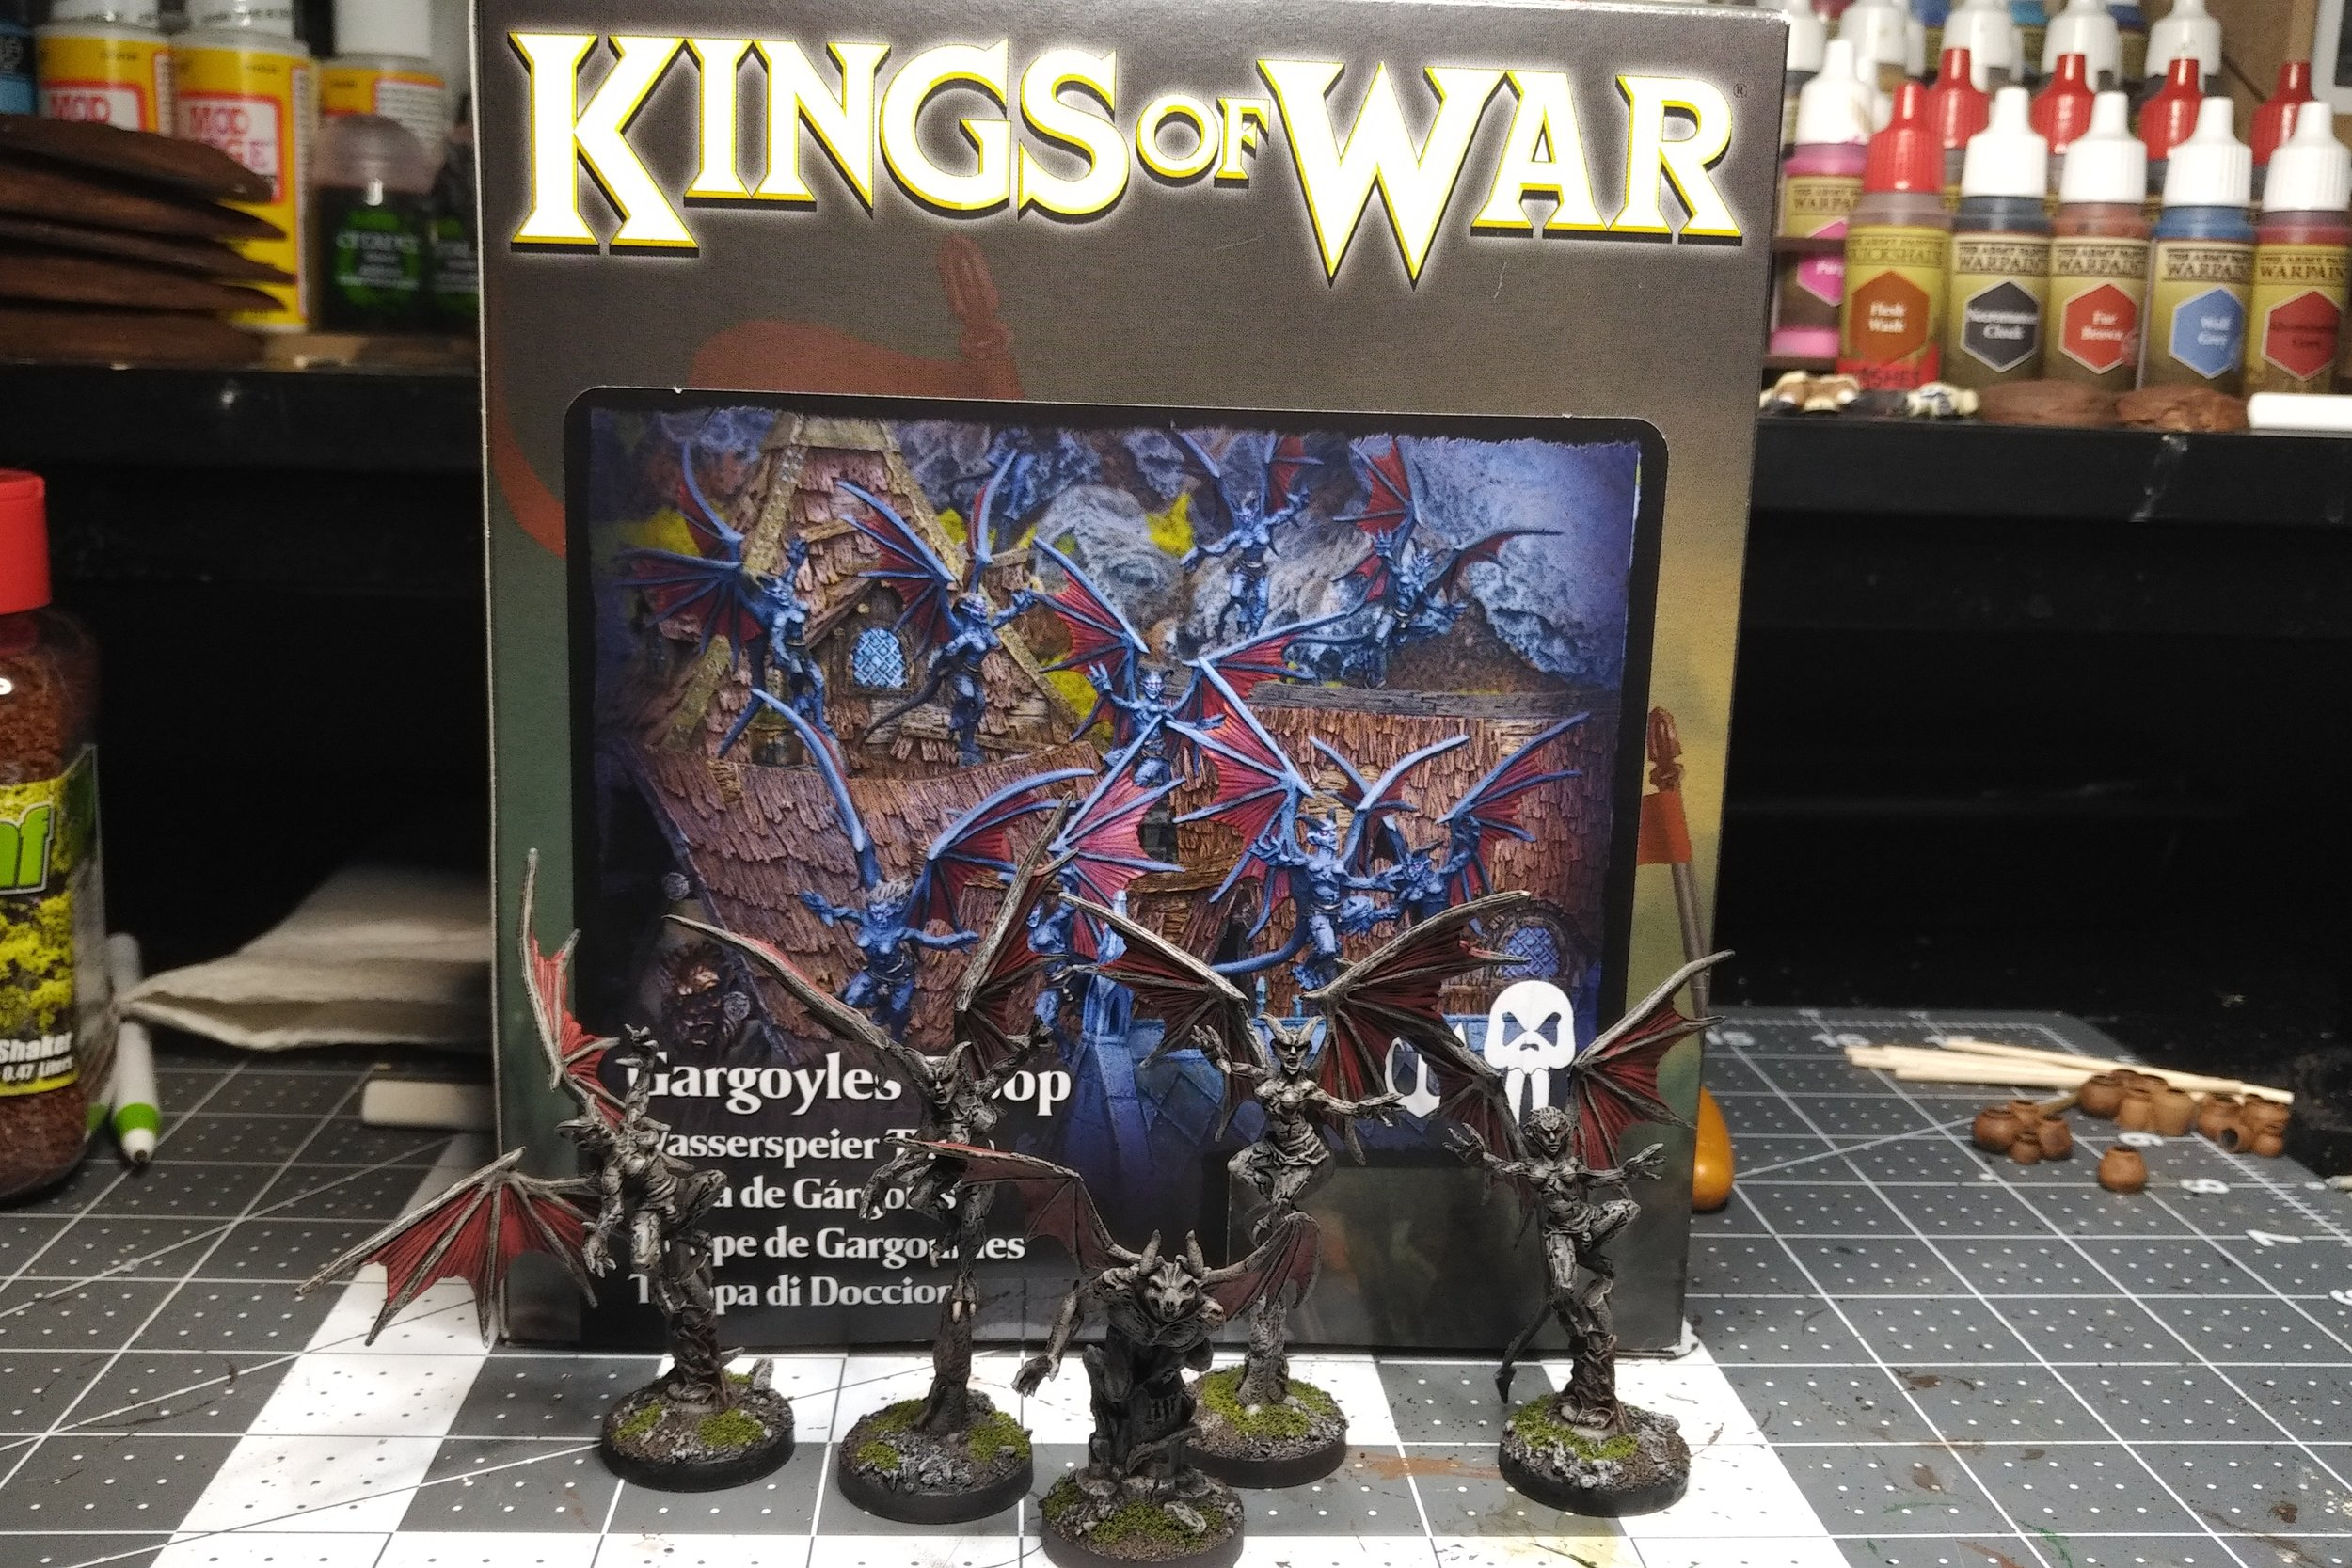 Kings of War: Gargoyles - Ba'su'su the Vile and Gargoyle Troop